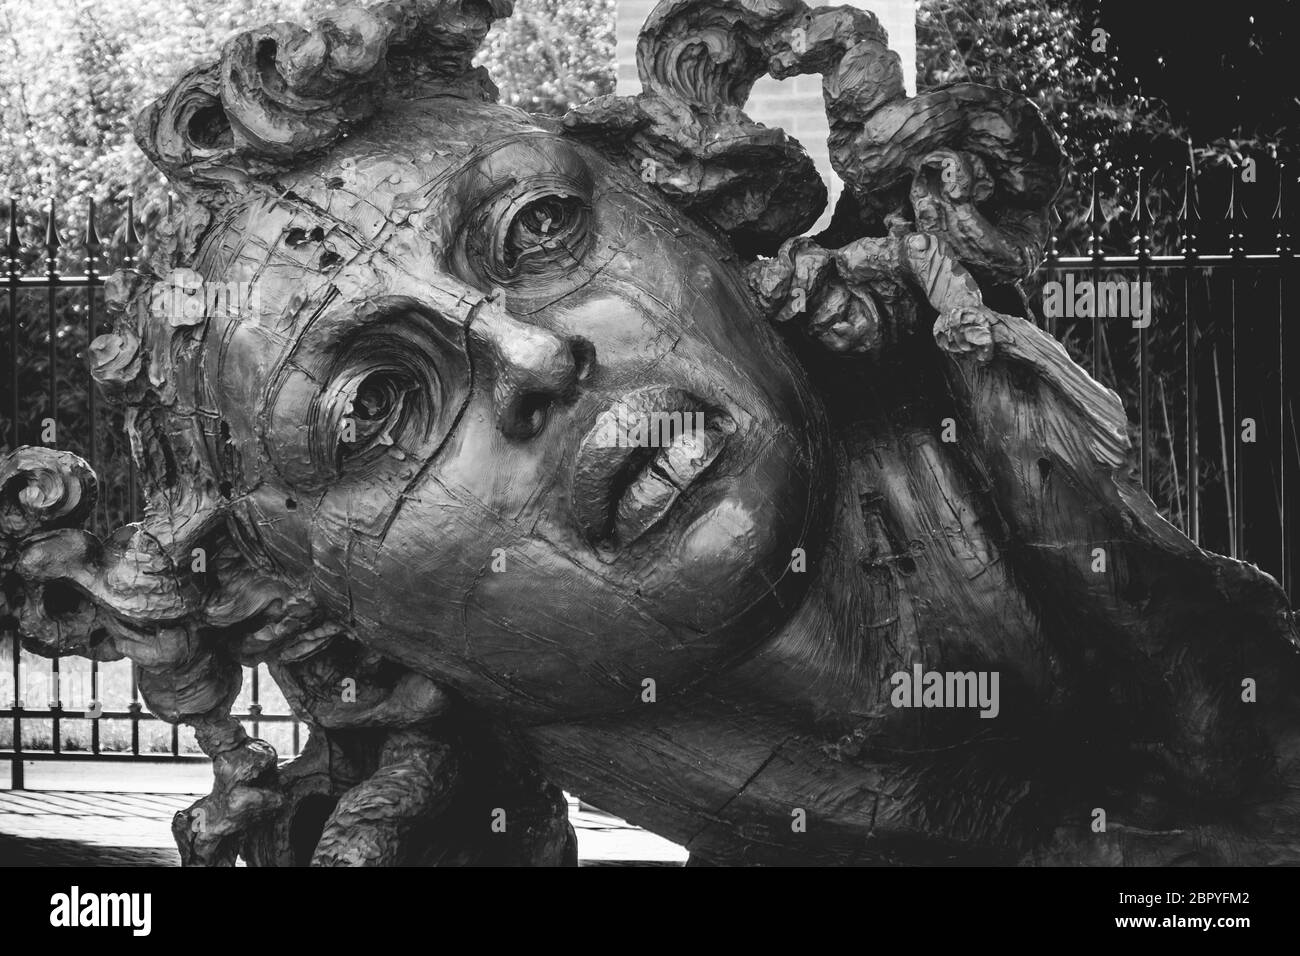 Statue face in black and white at the art museum of the Masone Labyrinth in Fontanellato - Parma - province - italy  Stock Photo